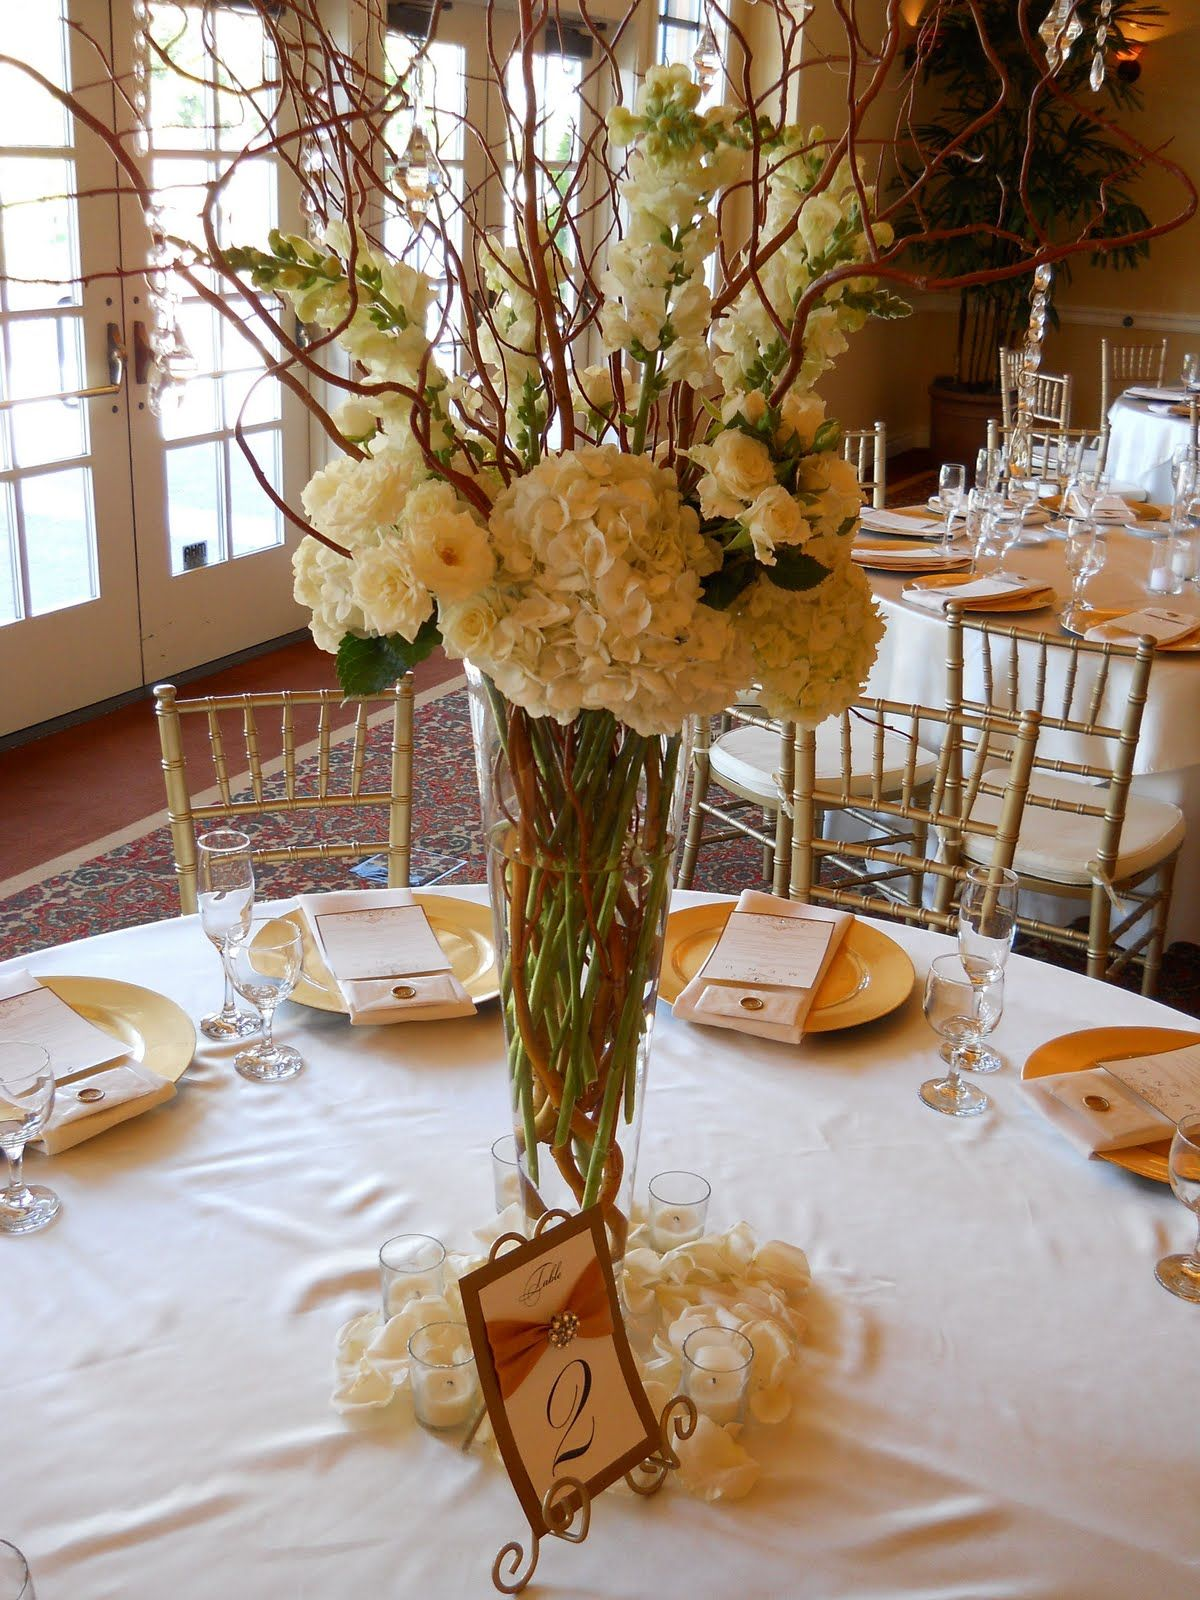 Pictures of wedding centerpieces with willow branches and